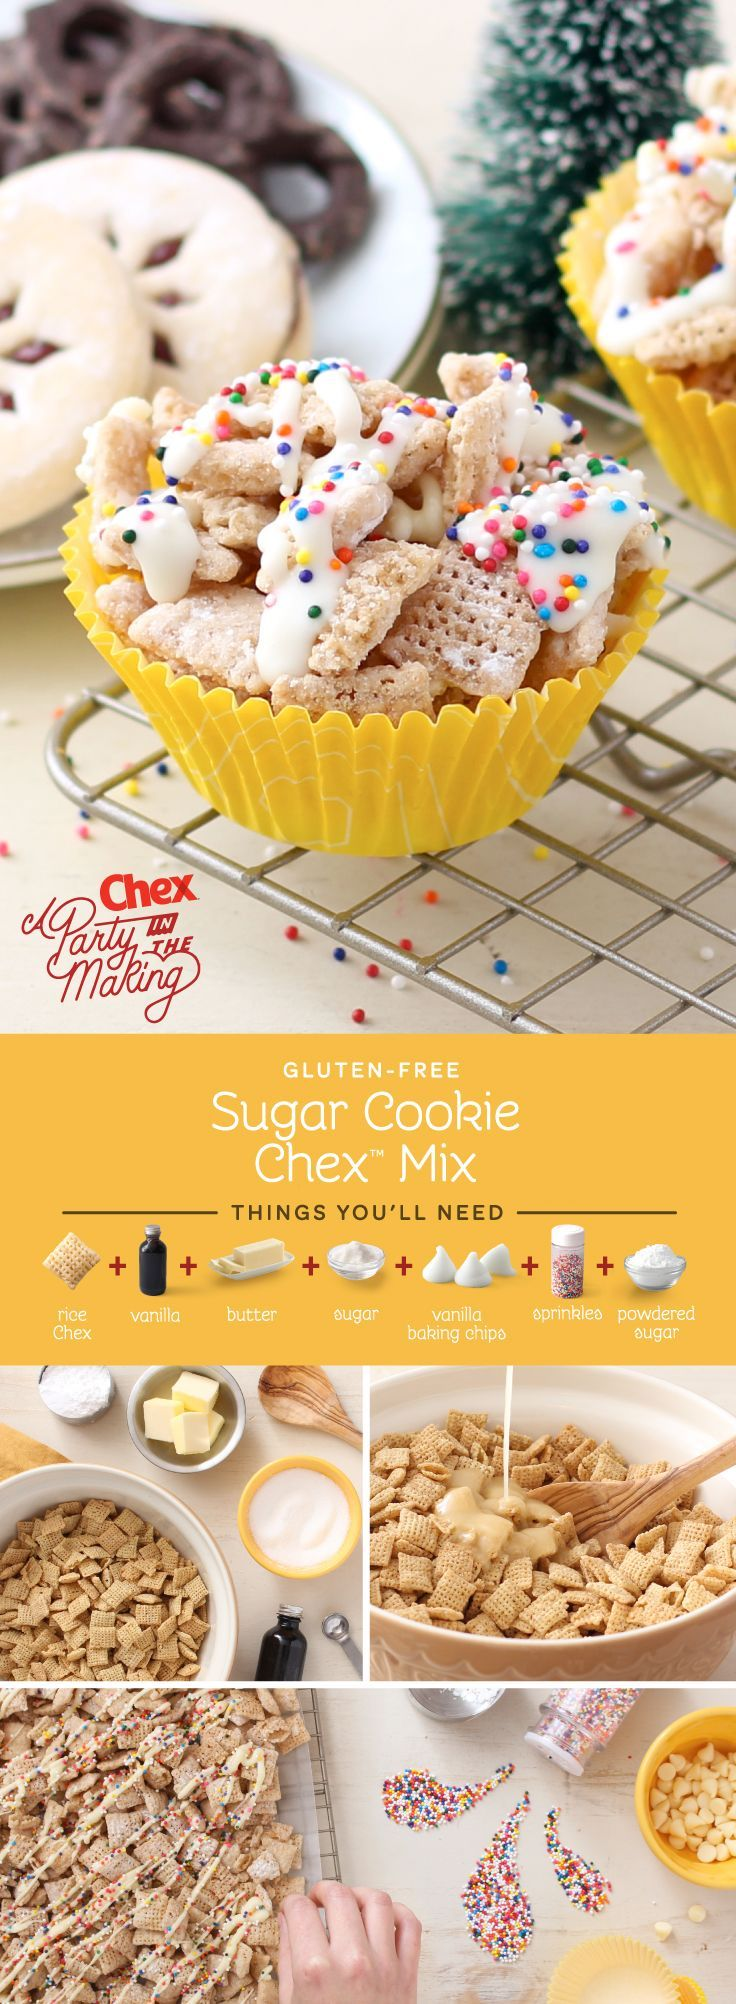 We bet no one else at your cookie exchange will bring this one! Homemade Sugar Cookie Chex Mix gives you all the flavor of your favorite holiday cut-outs without even turning on the oven. Plus it's gluten free!